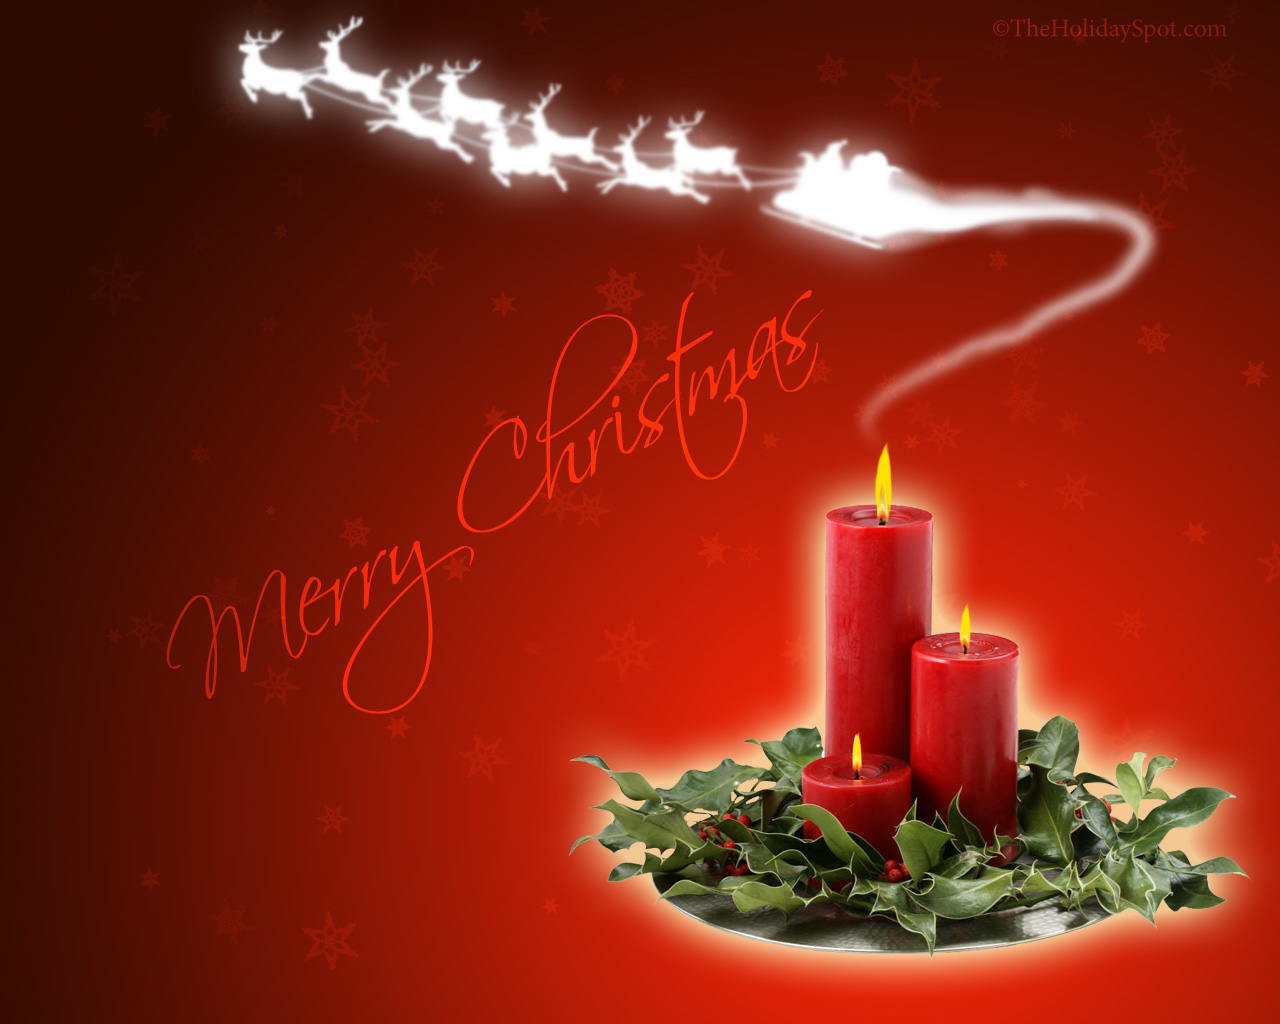 merry christmas wallpapers 1280x1024